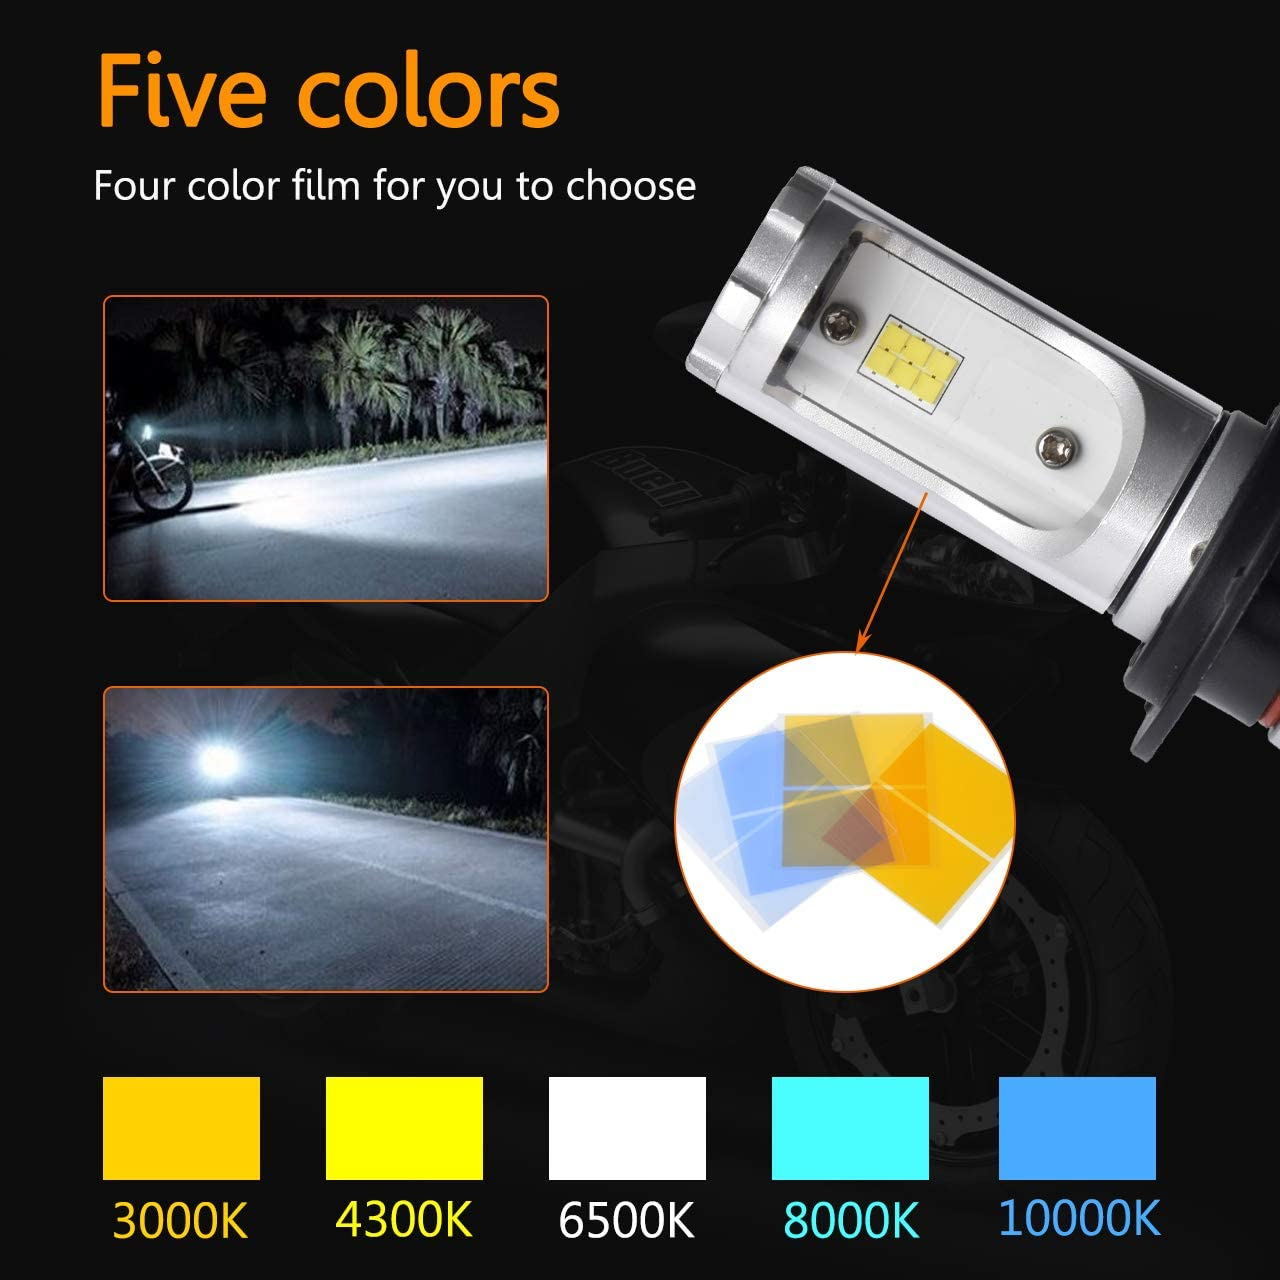 3000K//4300K//6500K//8000K//10000K 5000LM All-in-One High//Low Beam LED Headlight Bulb Replacement DOT Approved H4//9003 LED Motorcycle Headlight Bulb Five DIY Color Options Universal Conversion Kit